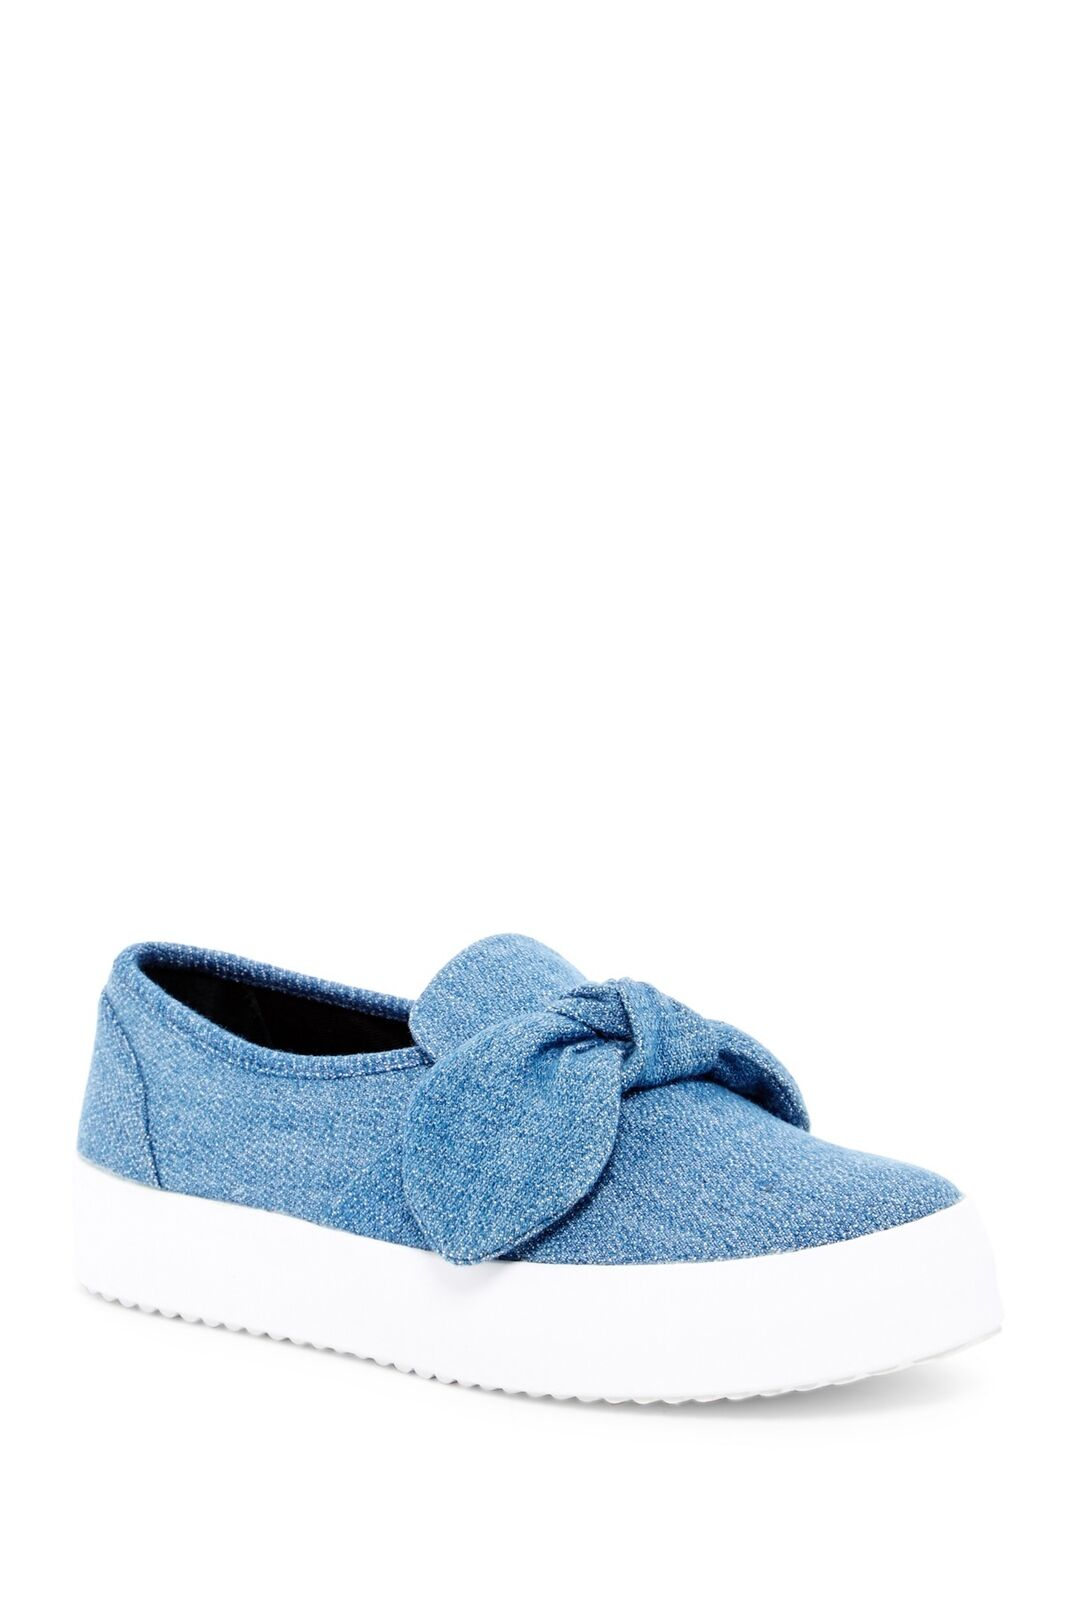 Rebecca Minkoff Stacey Stud Bow Platform Sneaker( Light bluee,9.5)